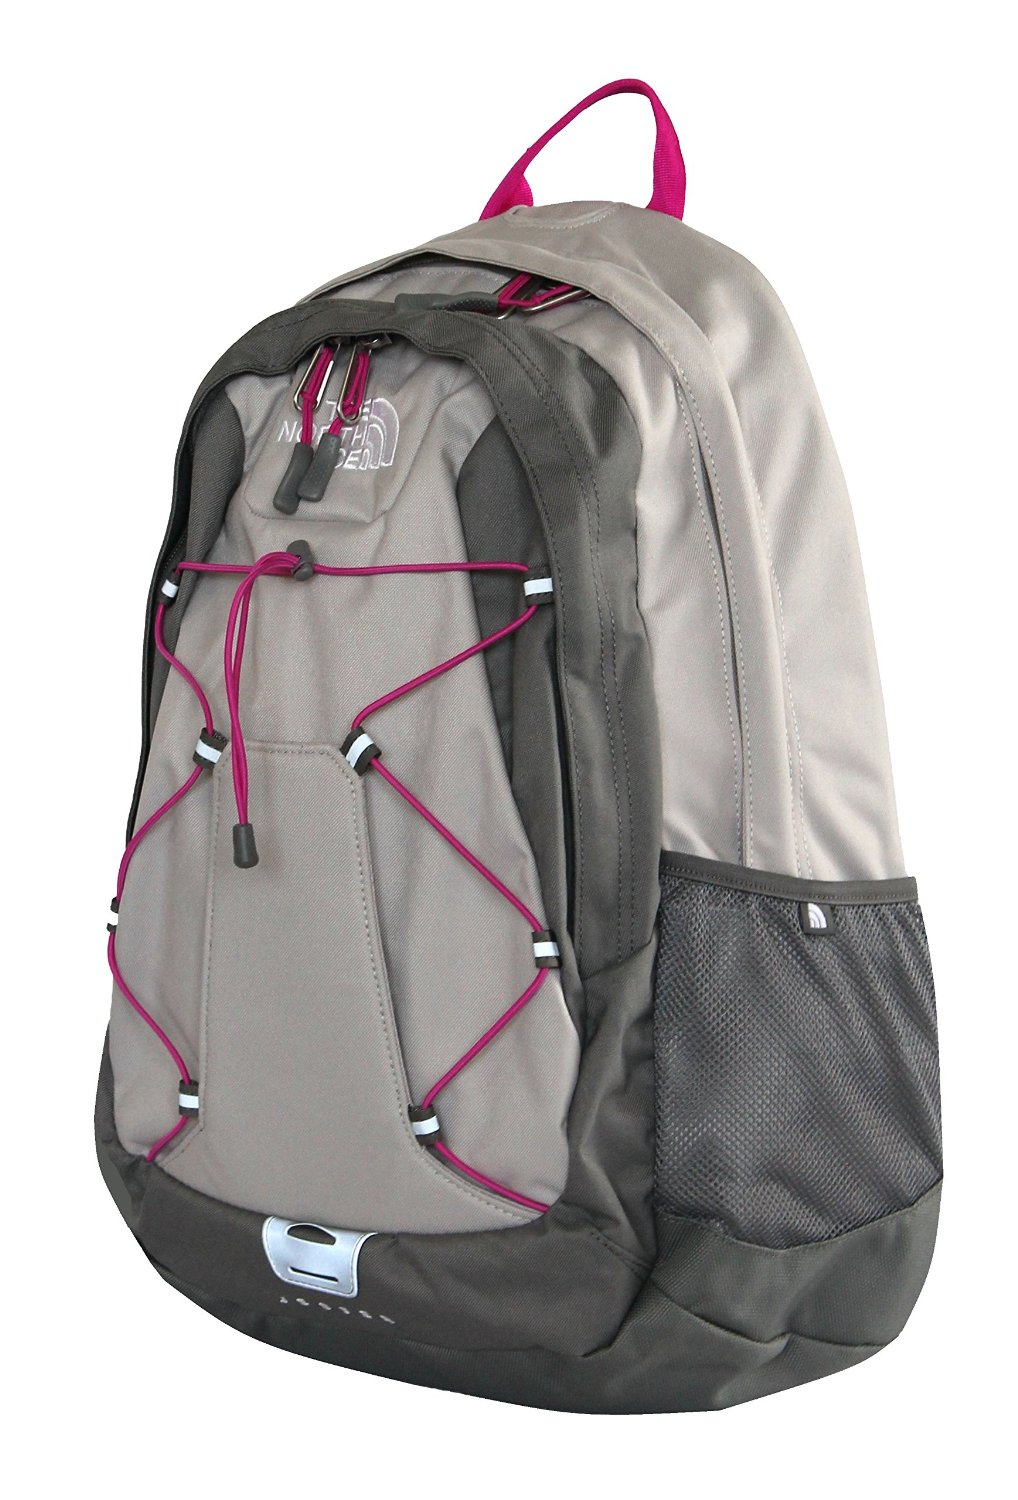 c6e83ed37 Buy The North Face womens Jester BP laptop Backpack BOOK BAG TNF ...